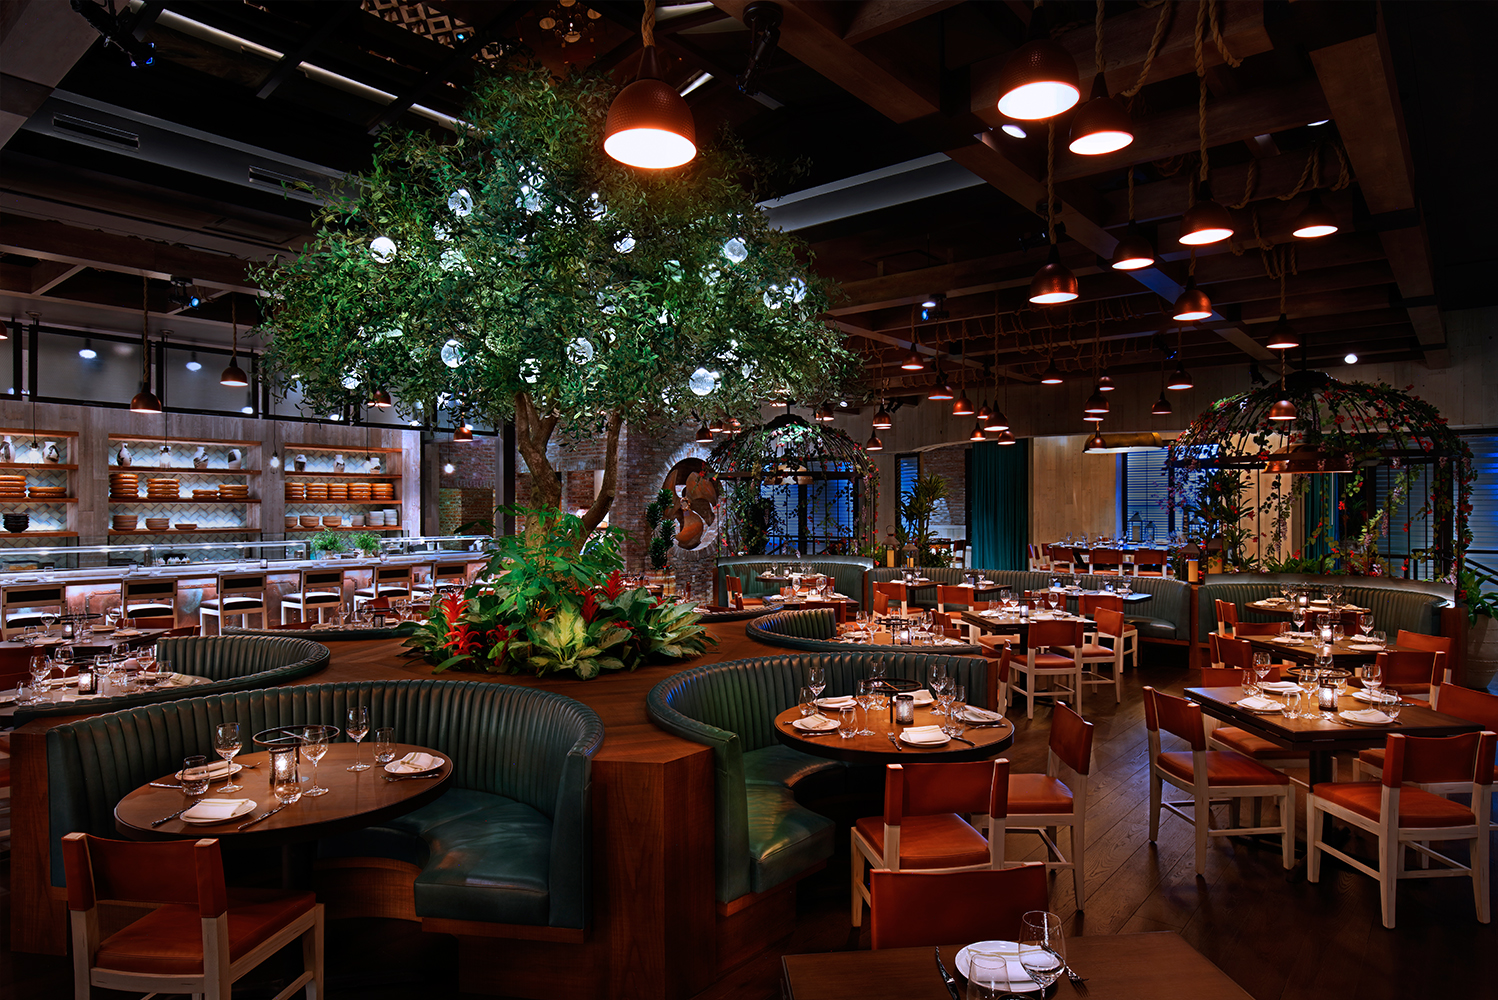 The centerpiece of the Catch Las Vegas dining room is a Mediterranean olive tree that stretches up to a faux skylight.